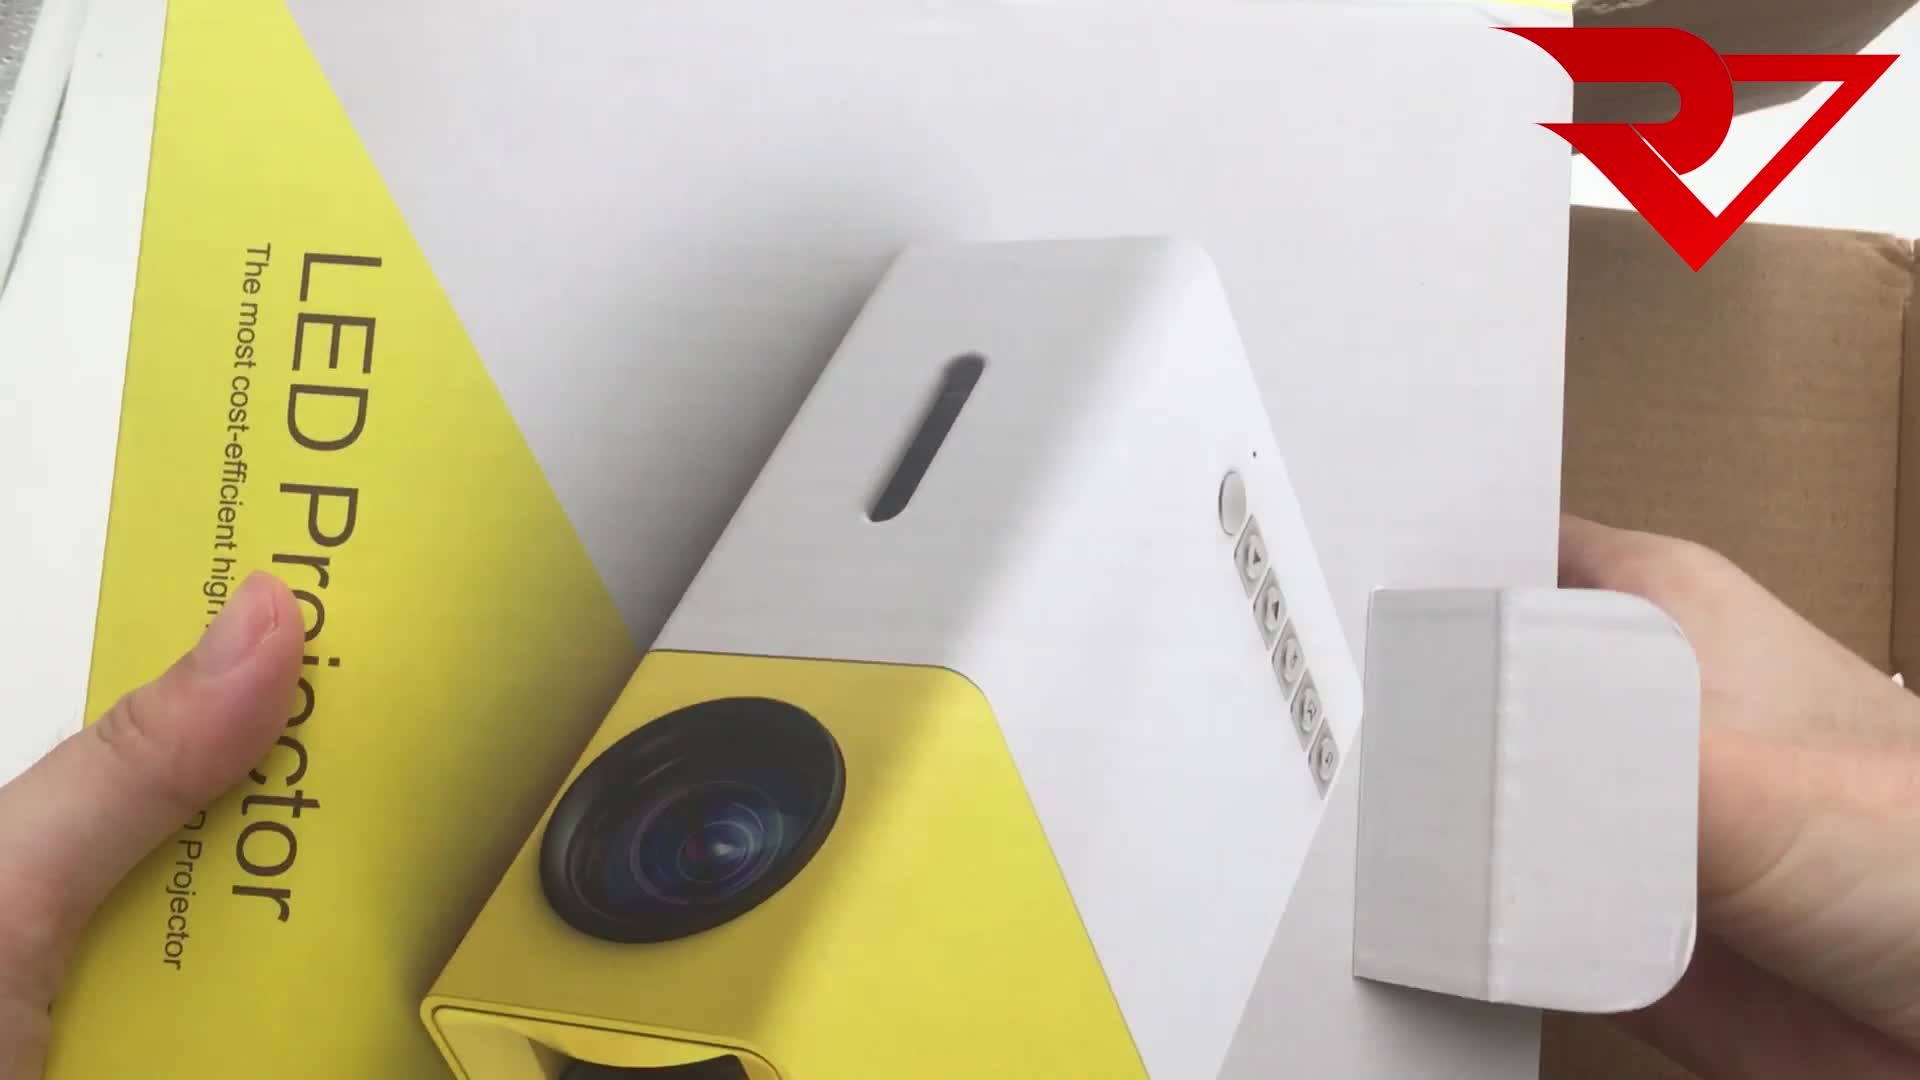 YG-300 Mini led projector HD 1080 portable home theater pocket cheap price YG300 lithium battery (without Lithium battery insid)